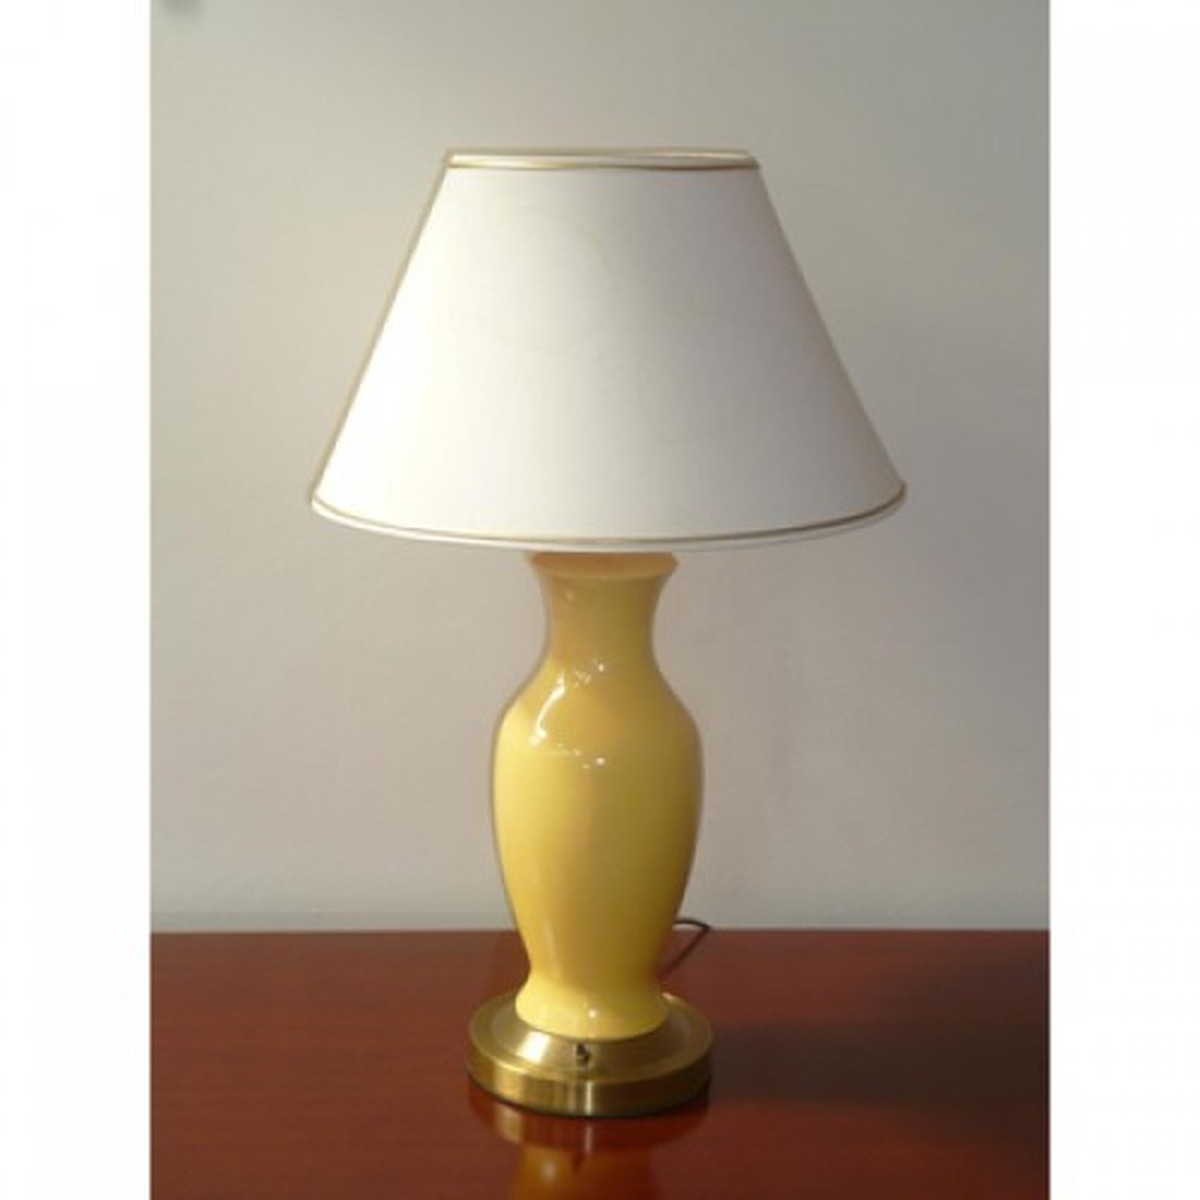 Secondhand Hotel Furniture Lighting 60x High Quality